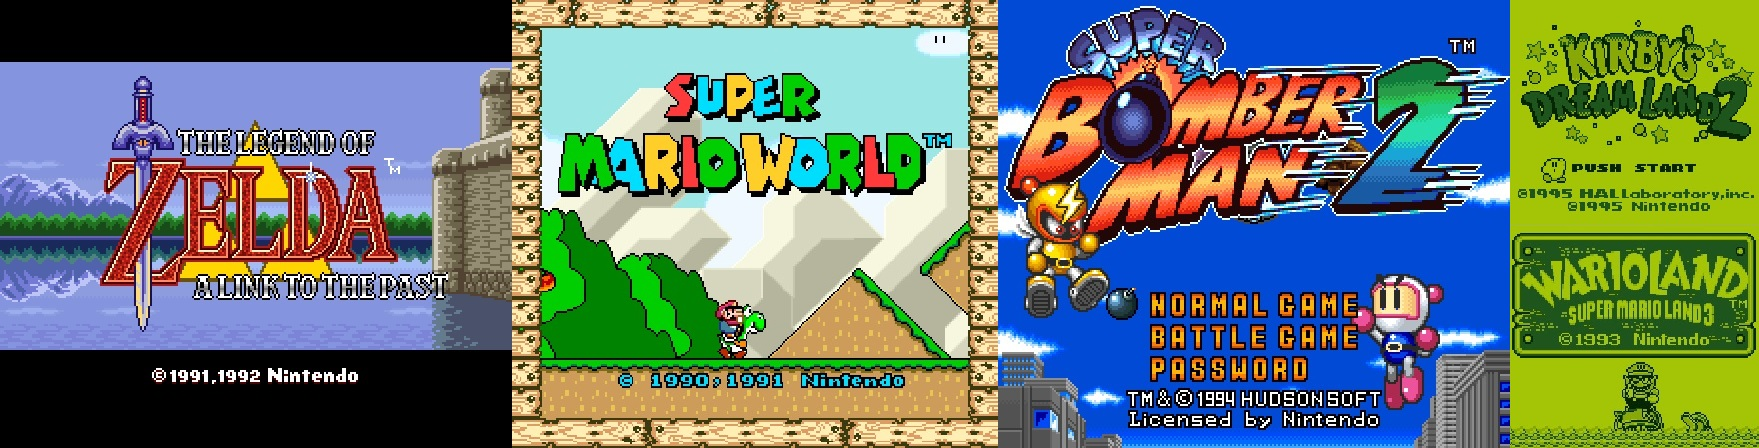 Title Screens of some of the first games I ever played.